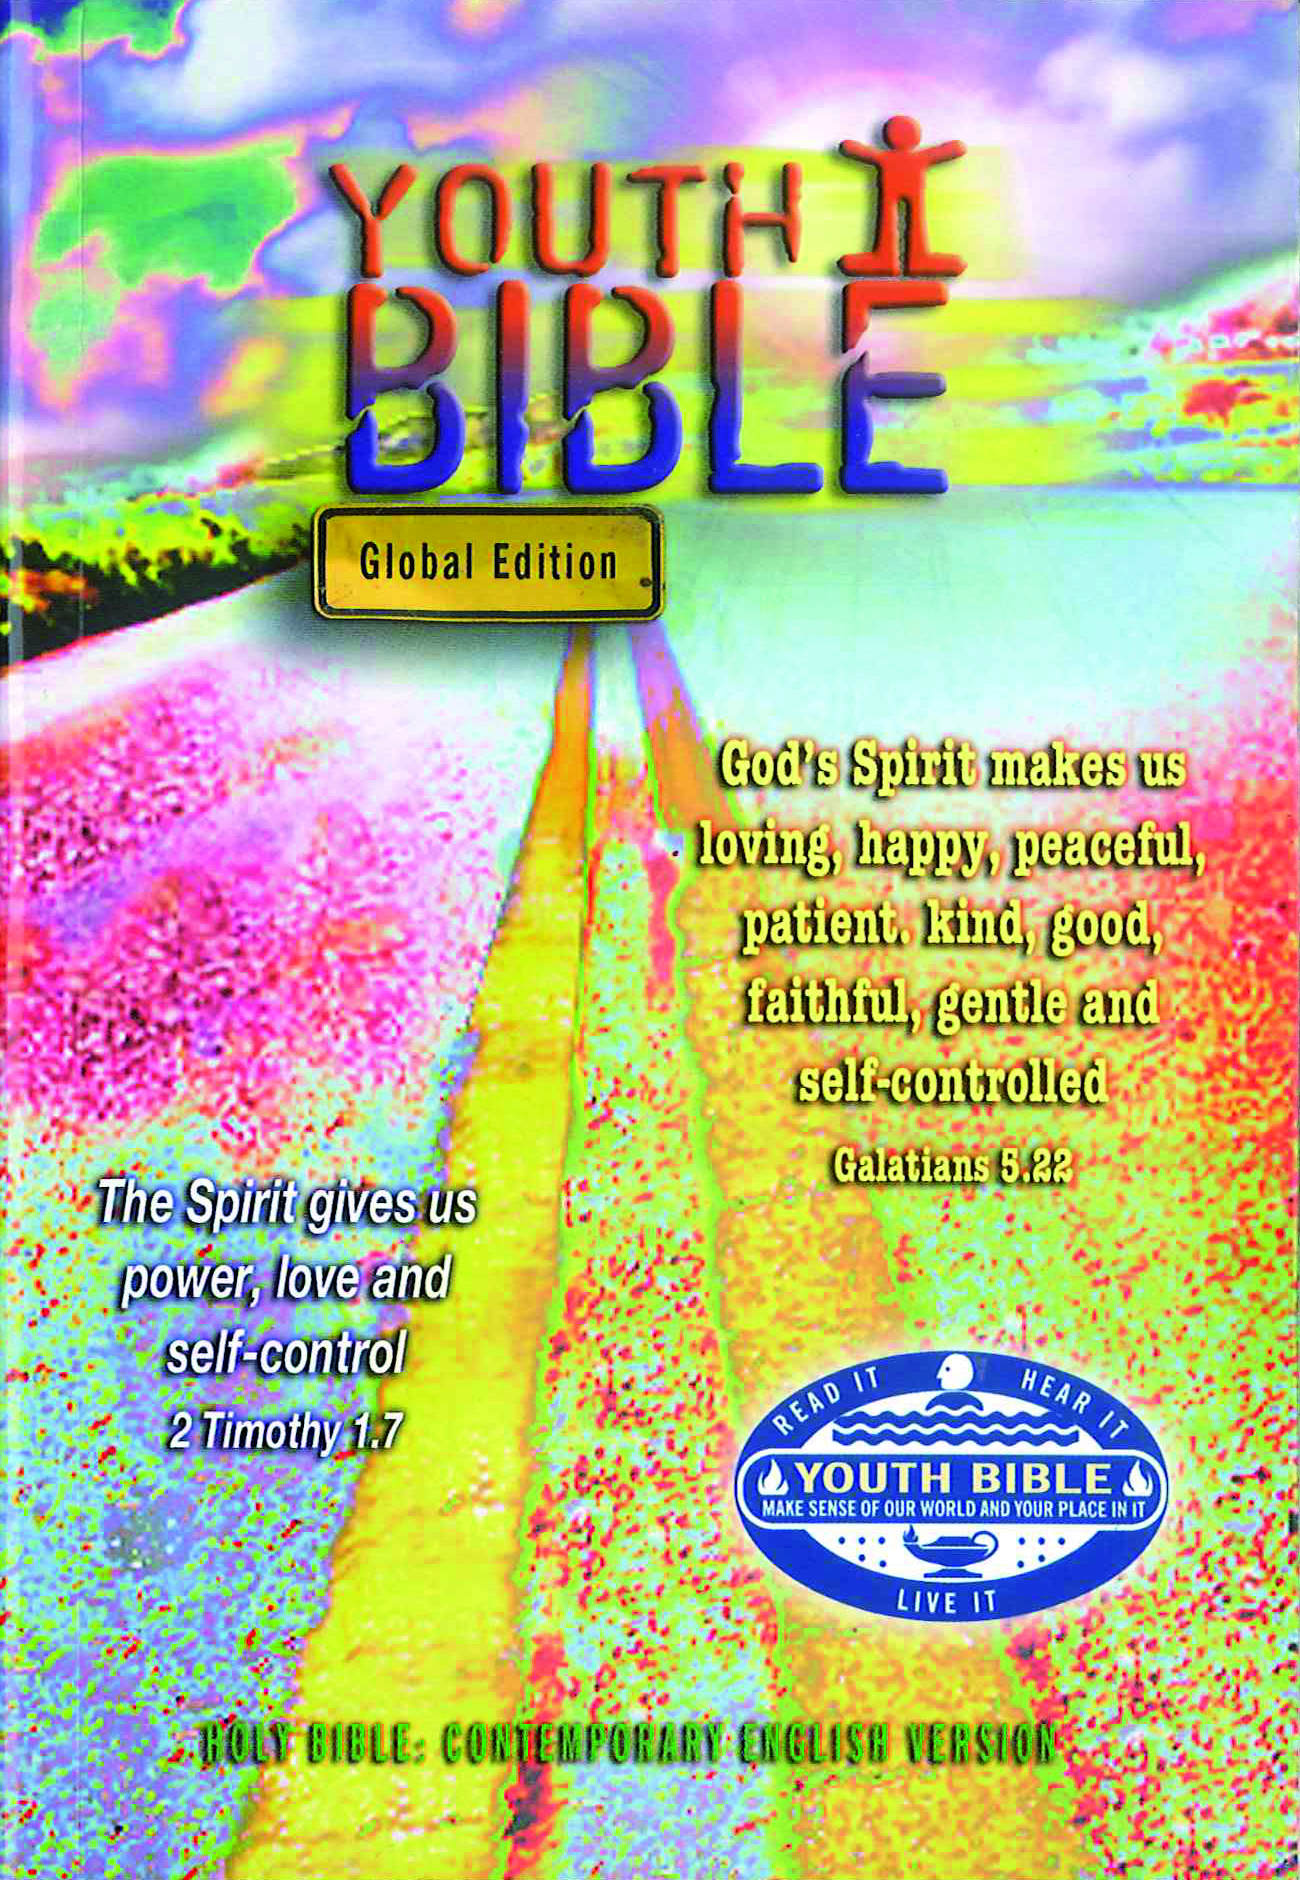 YOUTH BIBLE / GLOBAL EDITION